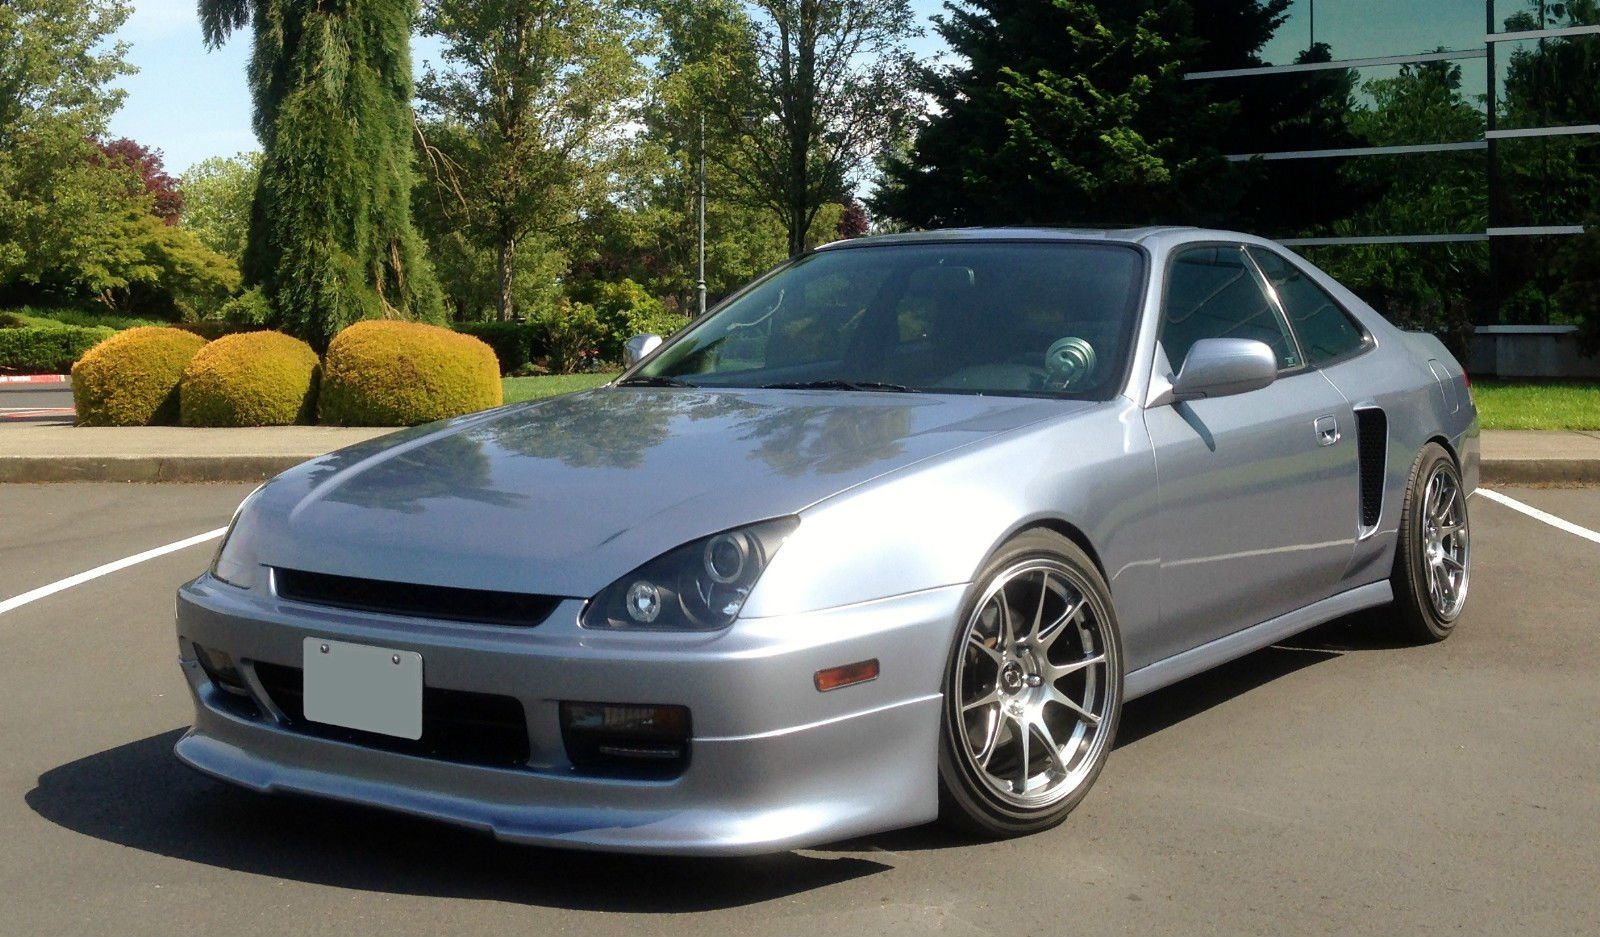 honda prelude pictures posters news and videos on your pursuit honda prelude picture honda prelude twin engine jpg